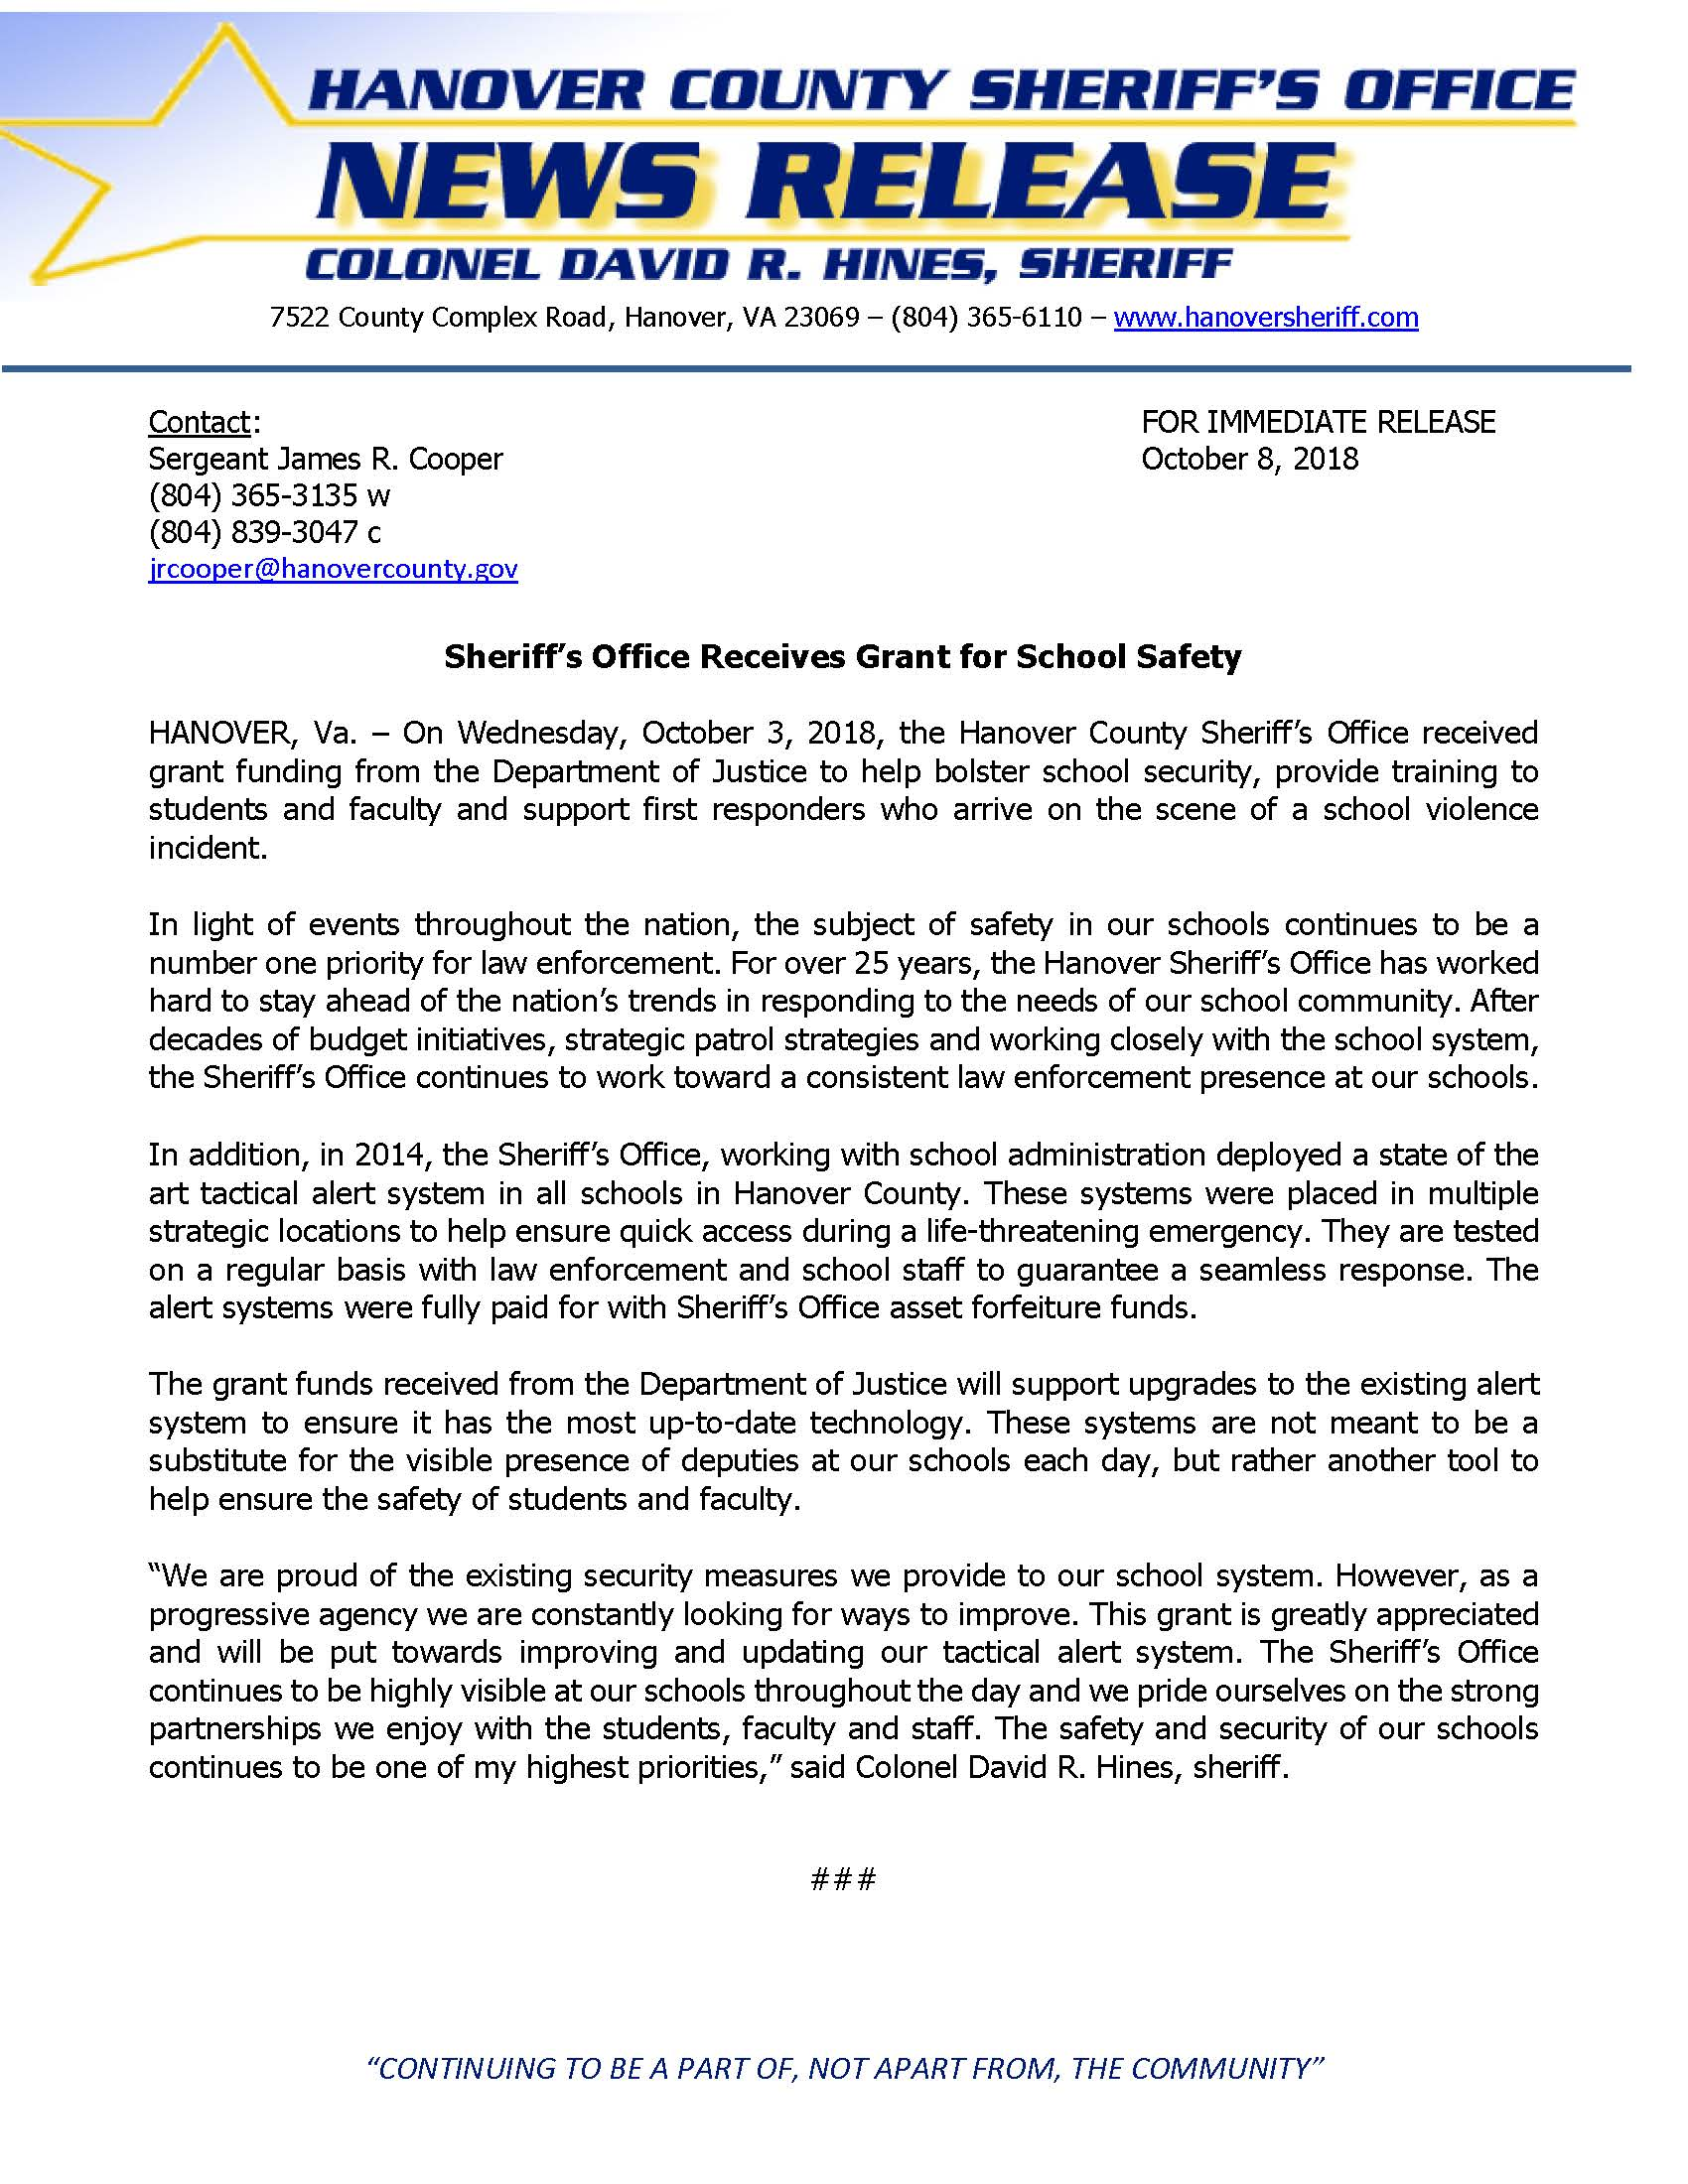 HCSO - Sheriffs Office Receives Grant for School Safety- October 8, 2018